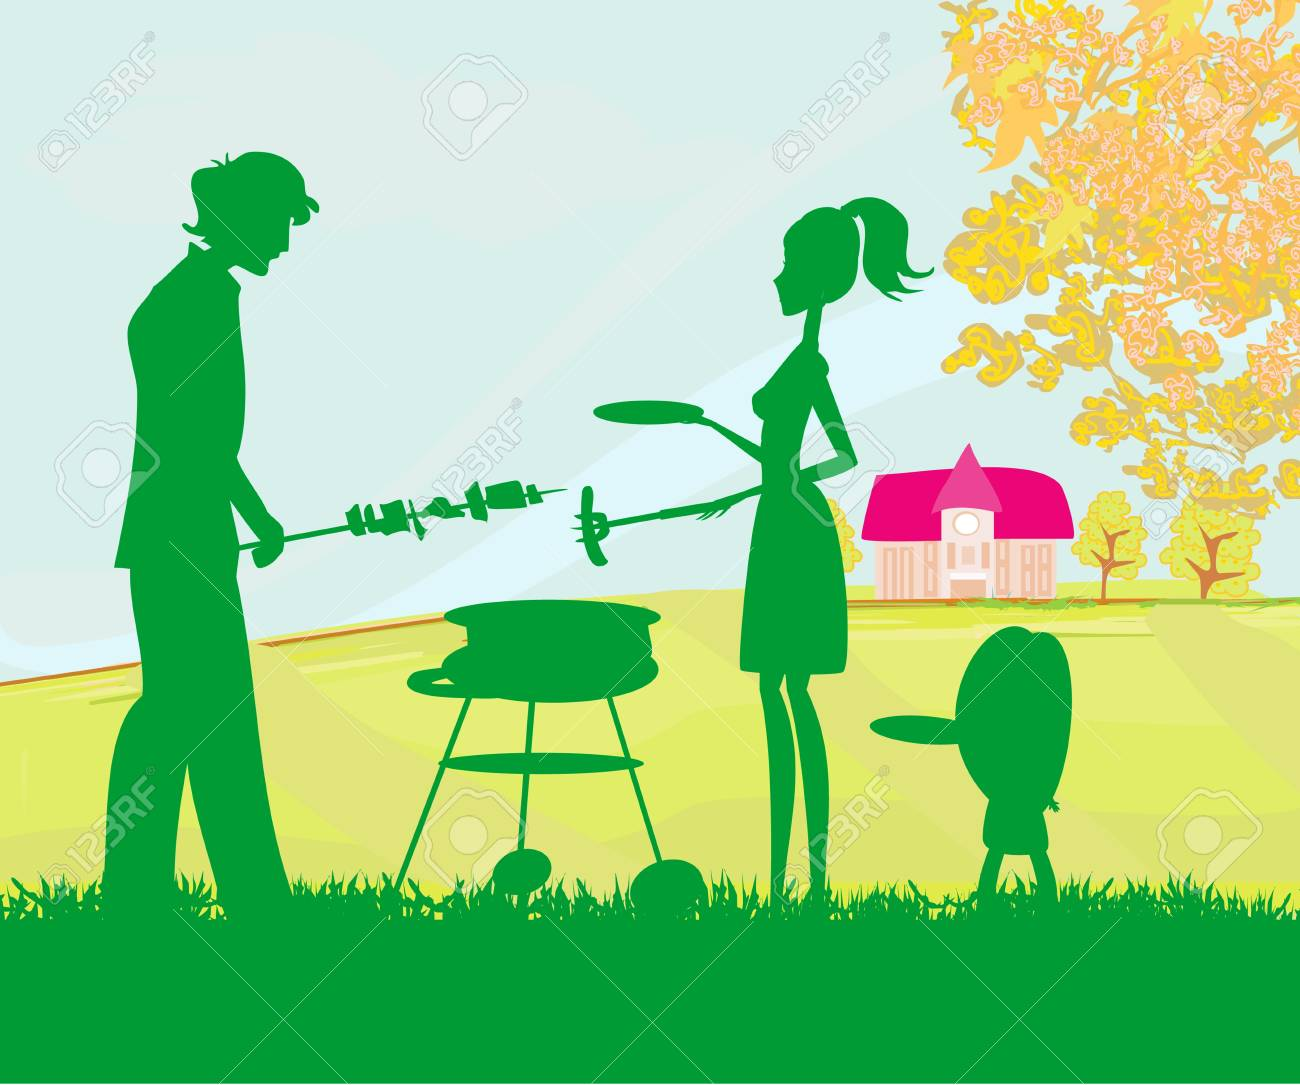 illustration of a family having a picnic in a park Stock Vector - 17224868